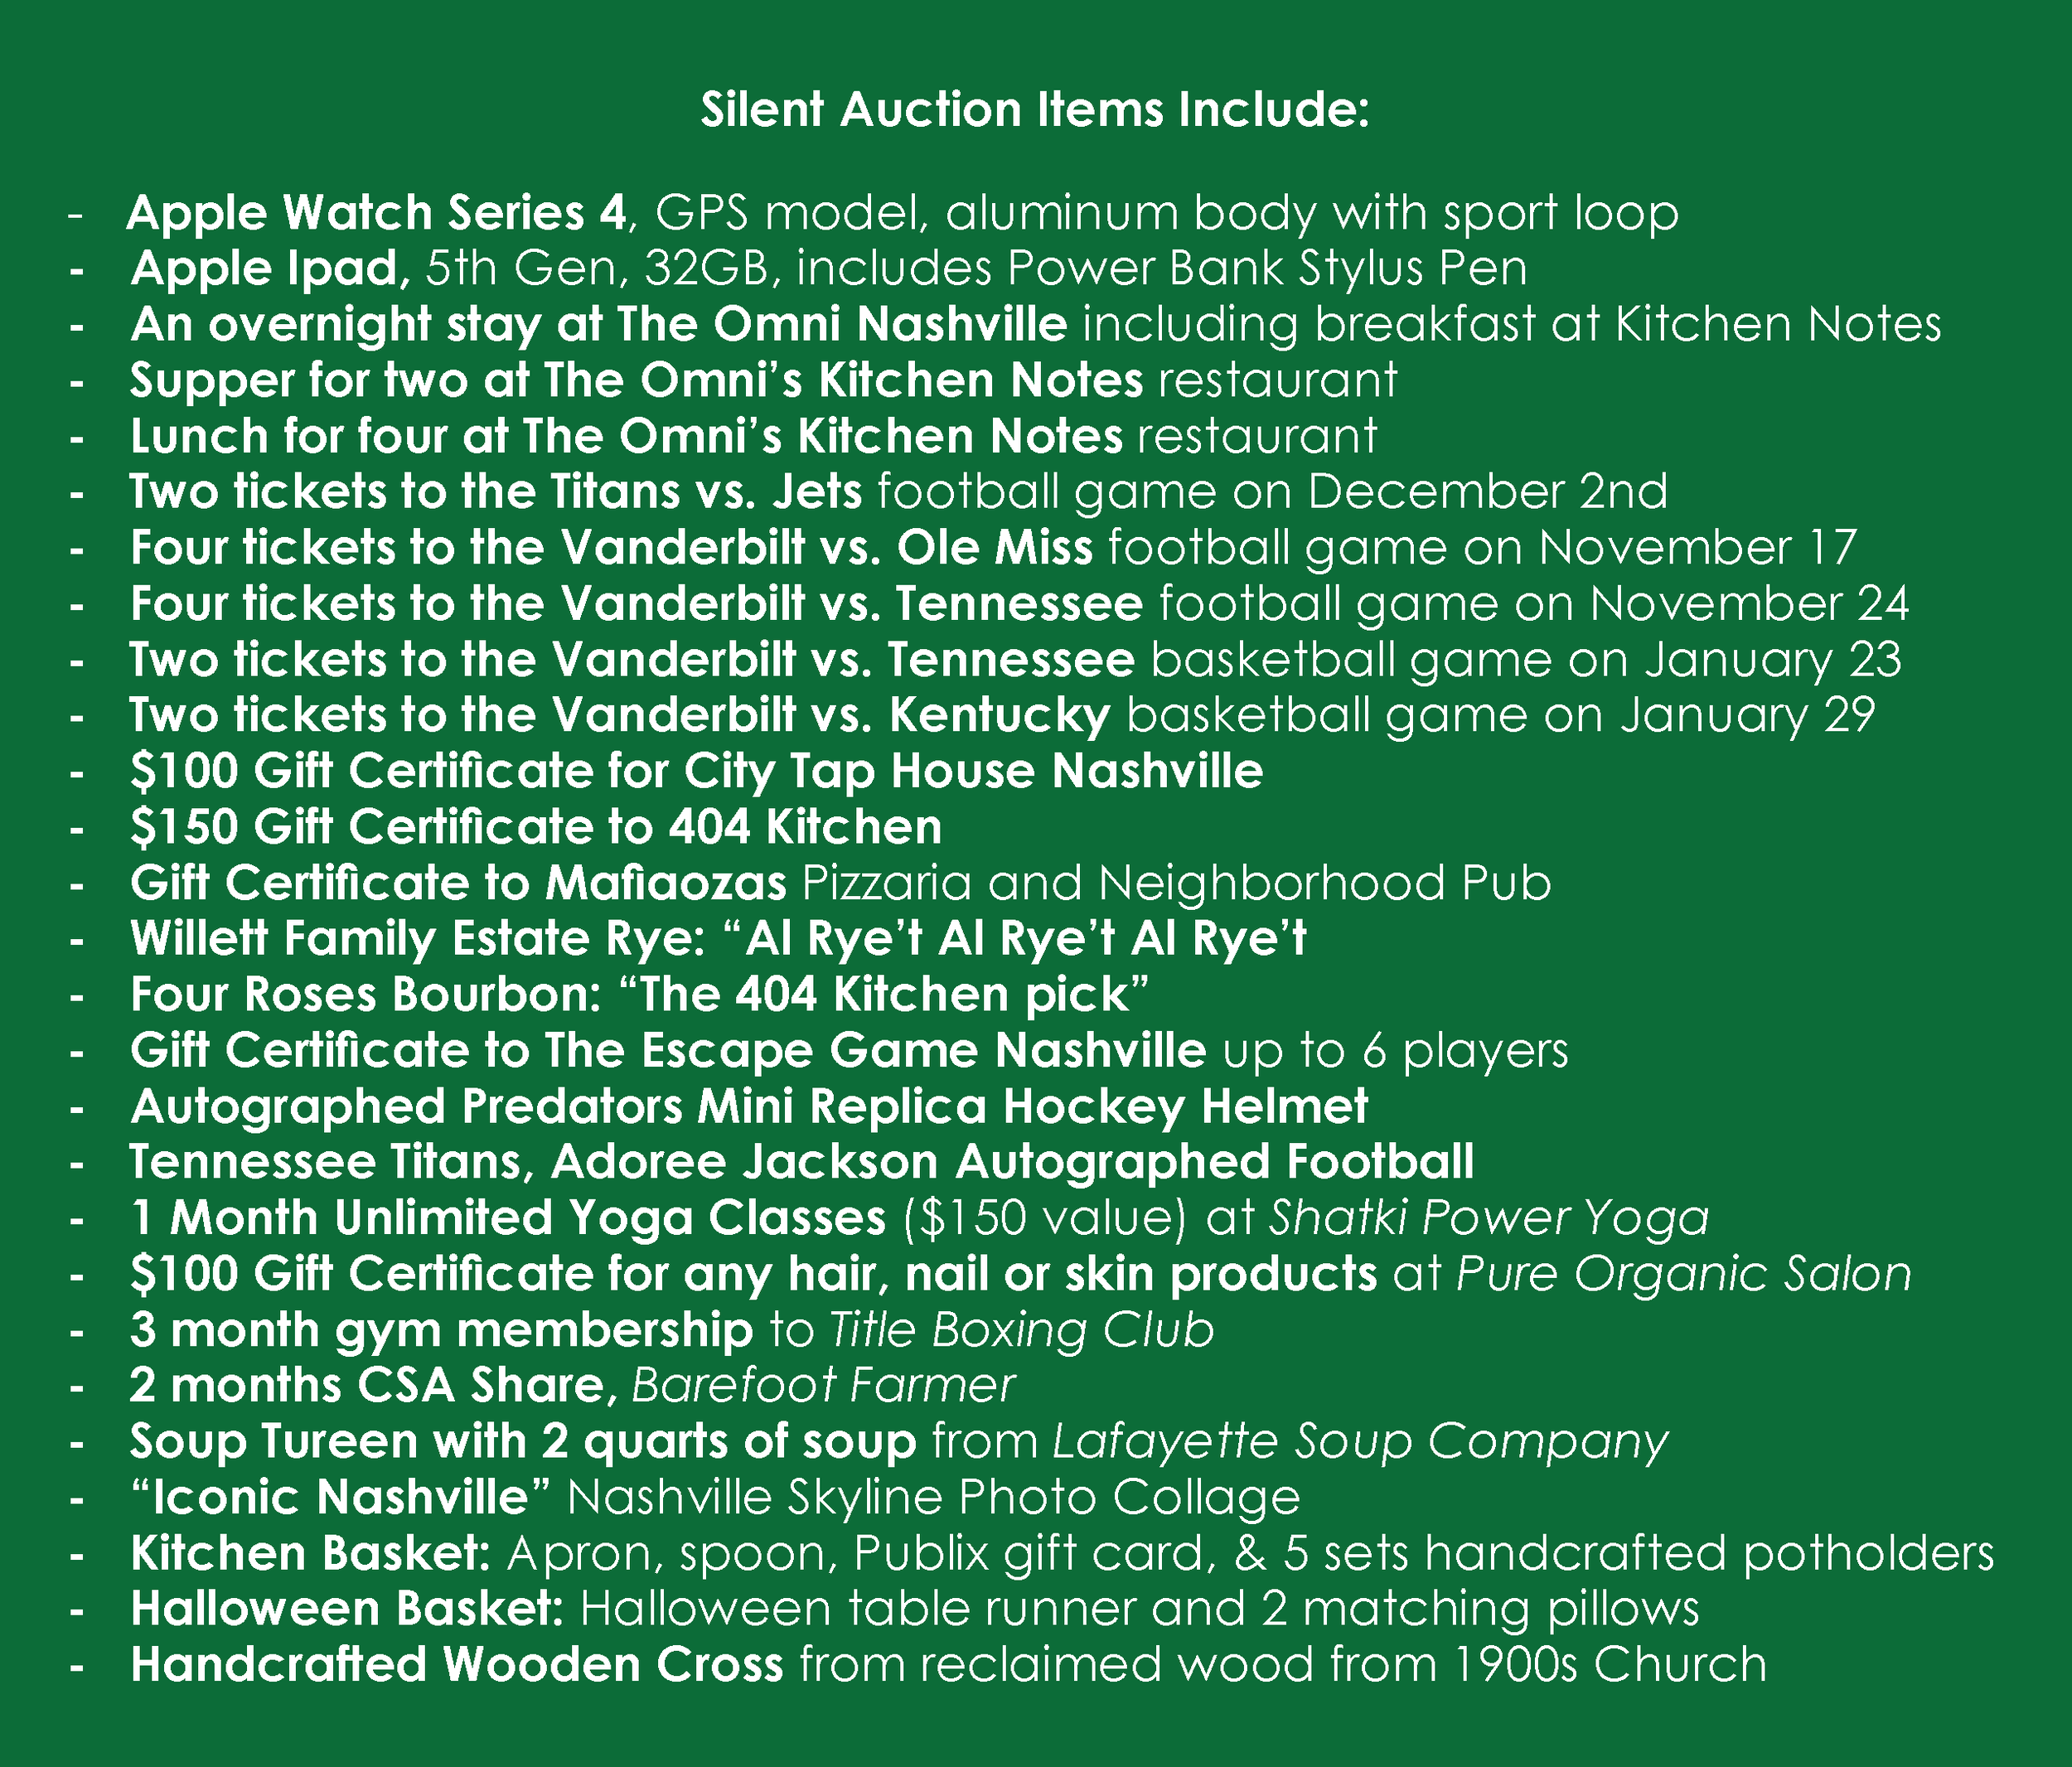 Silent Auction Items 10-18-18.png